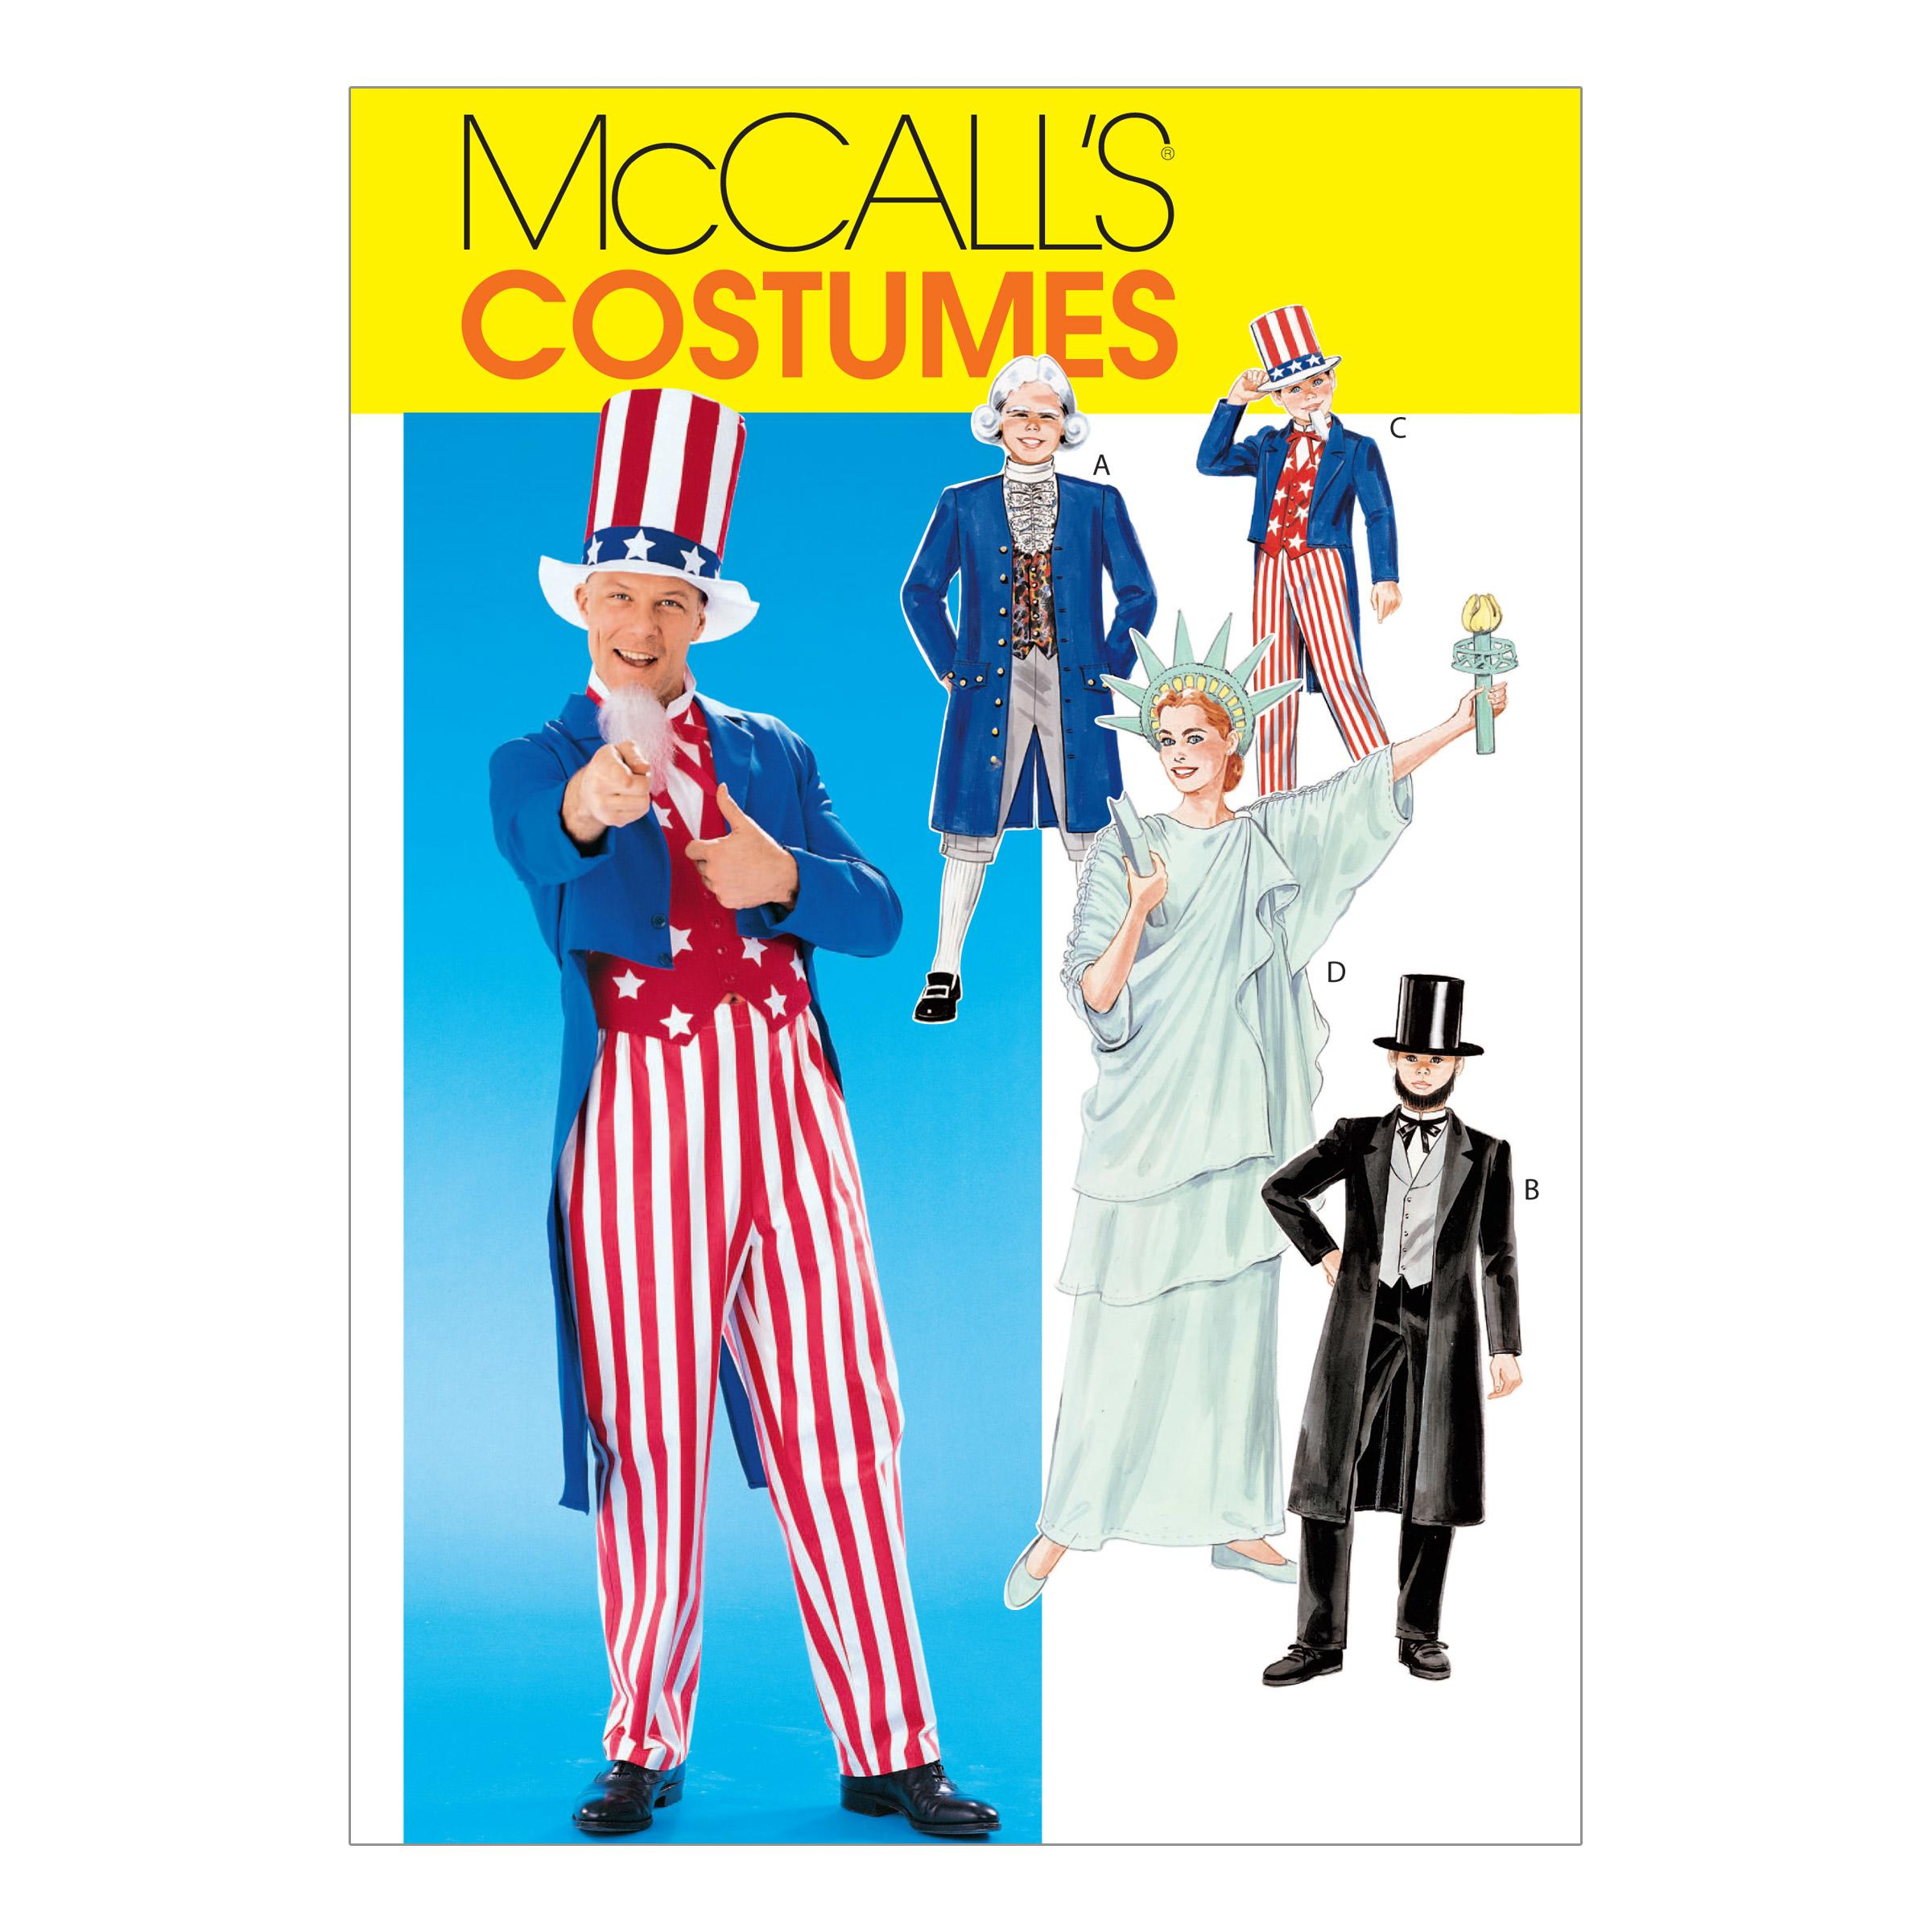 McCalls M6143 Costumes, Halloween